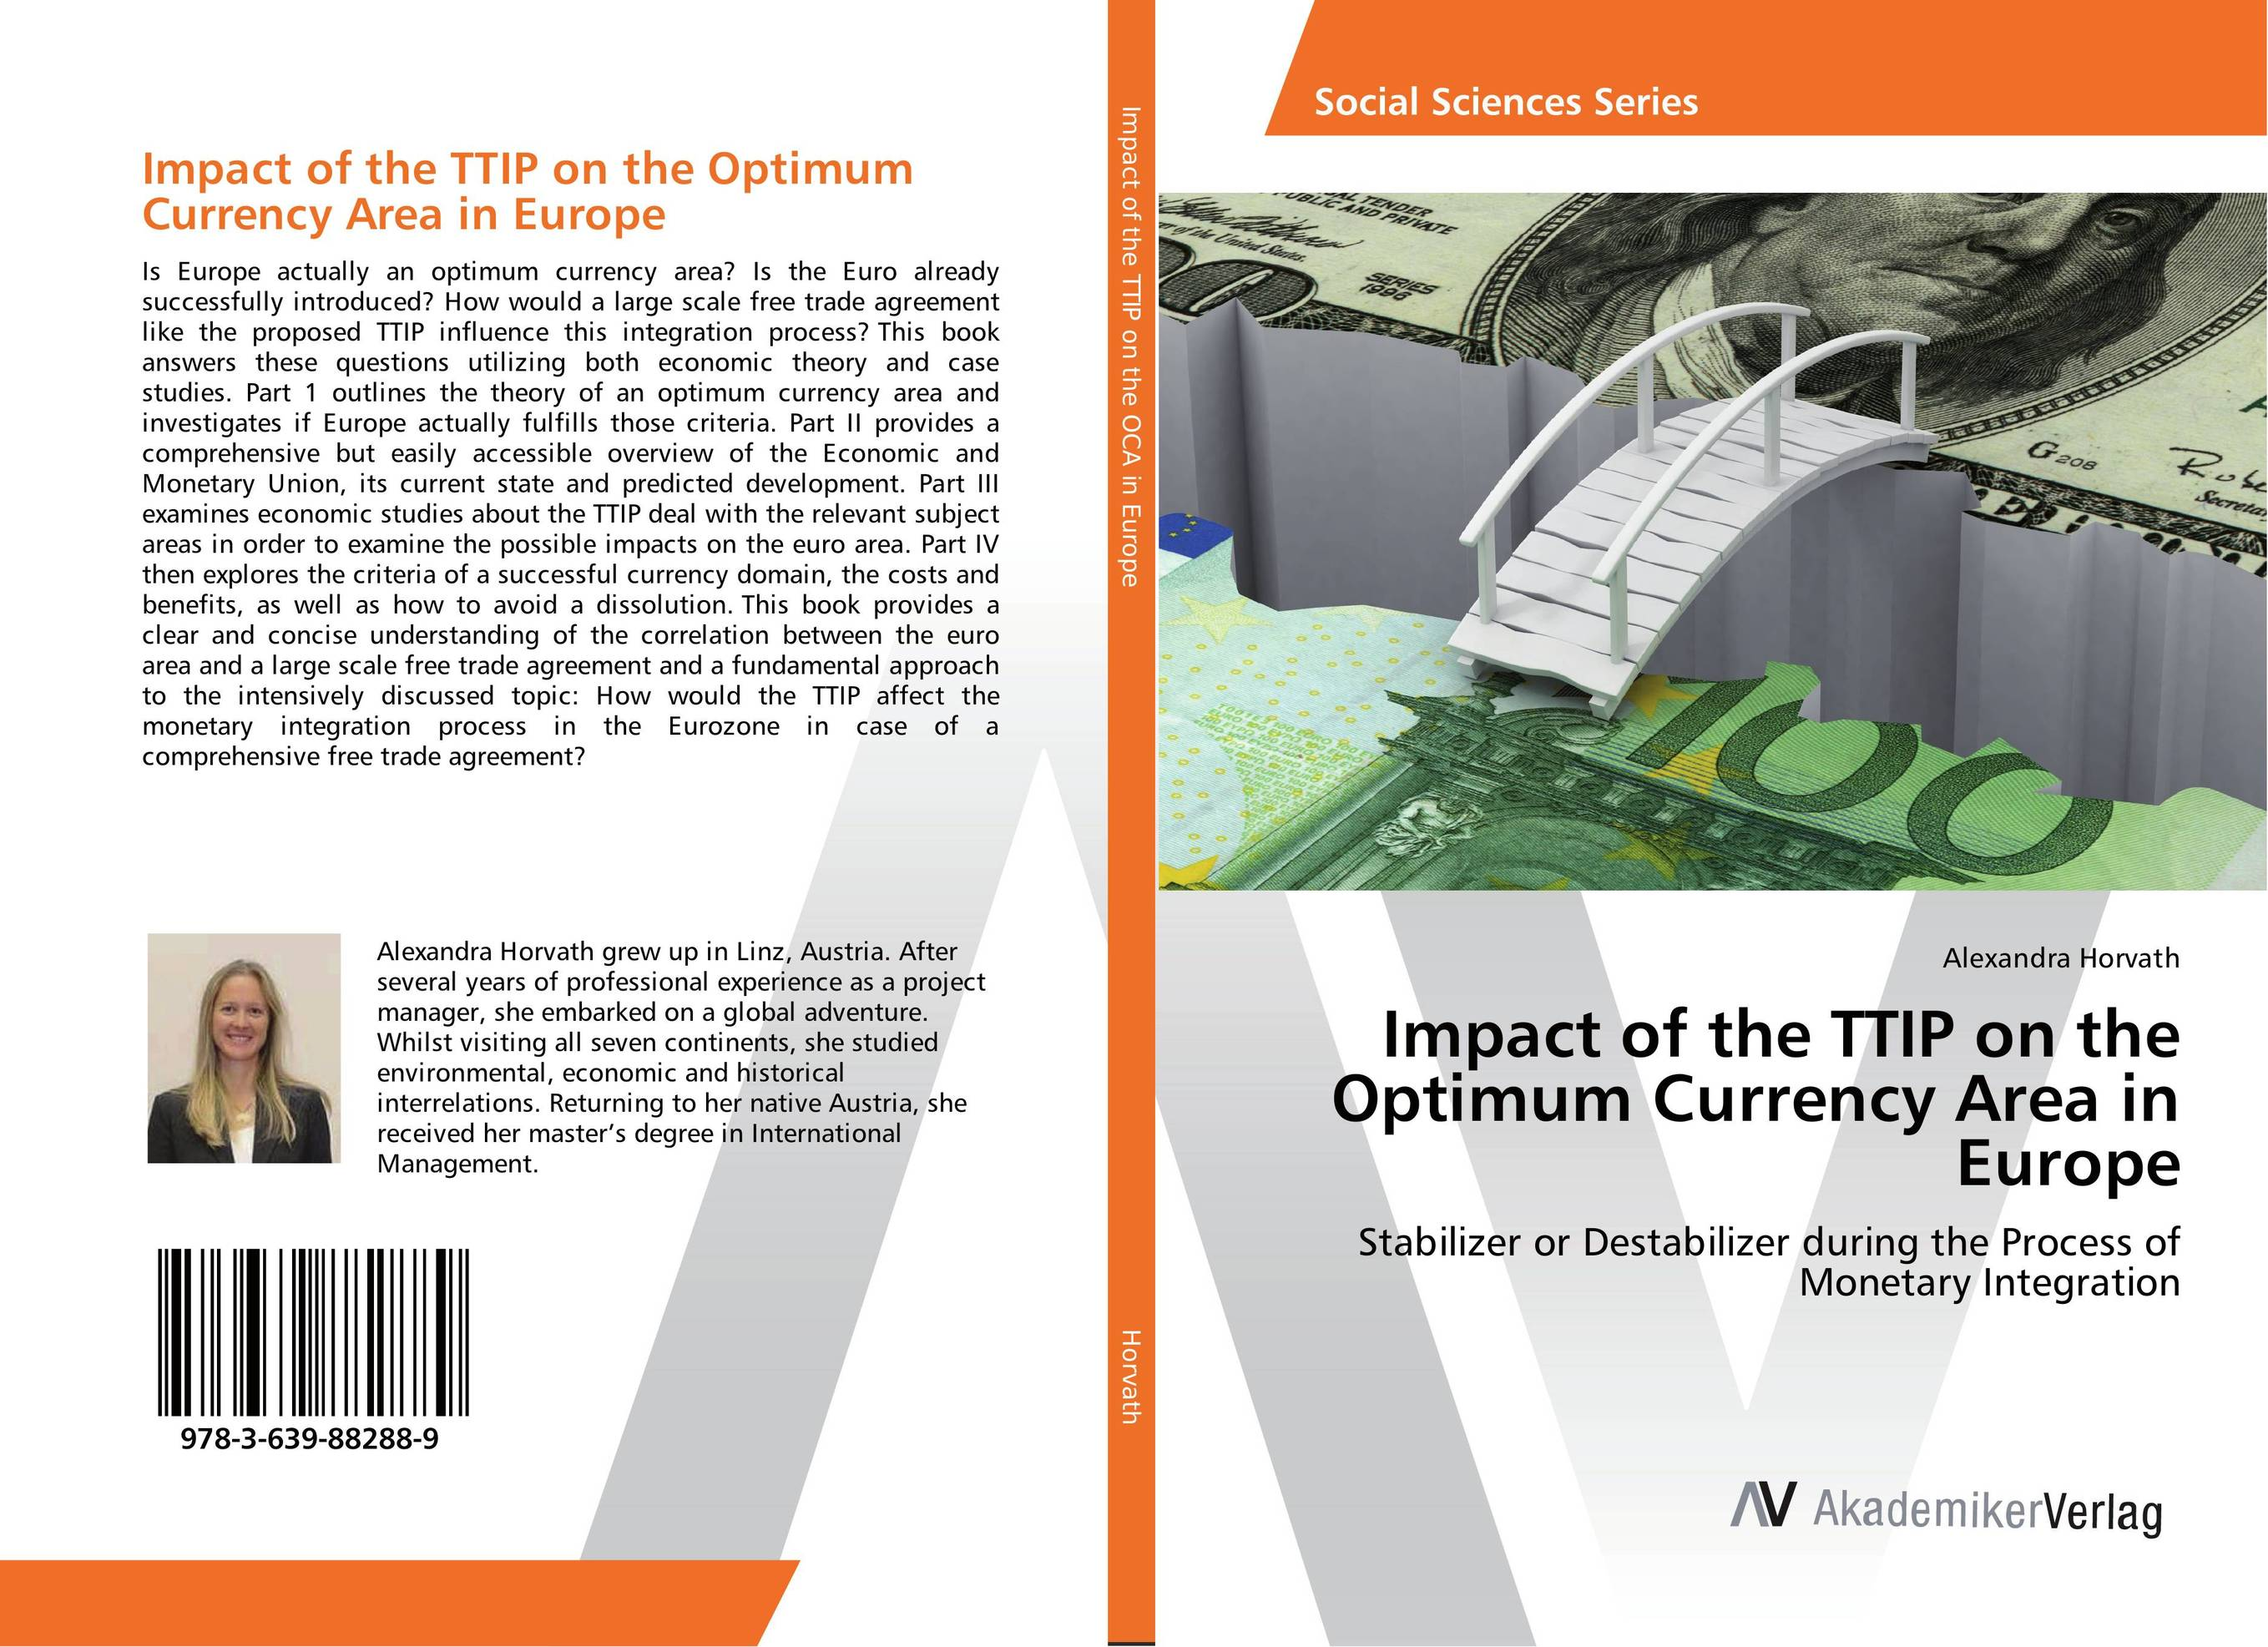 Impact of the TTIP on the Optimum Currency Area in Europe